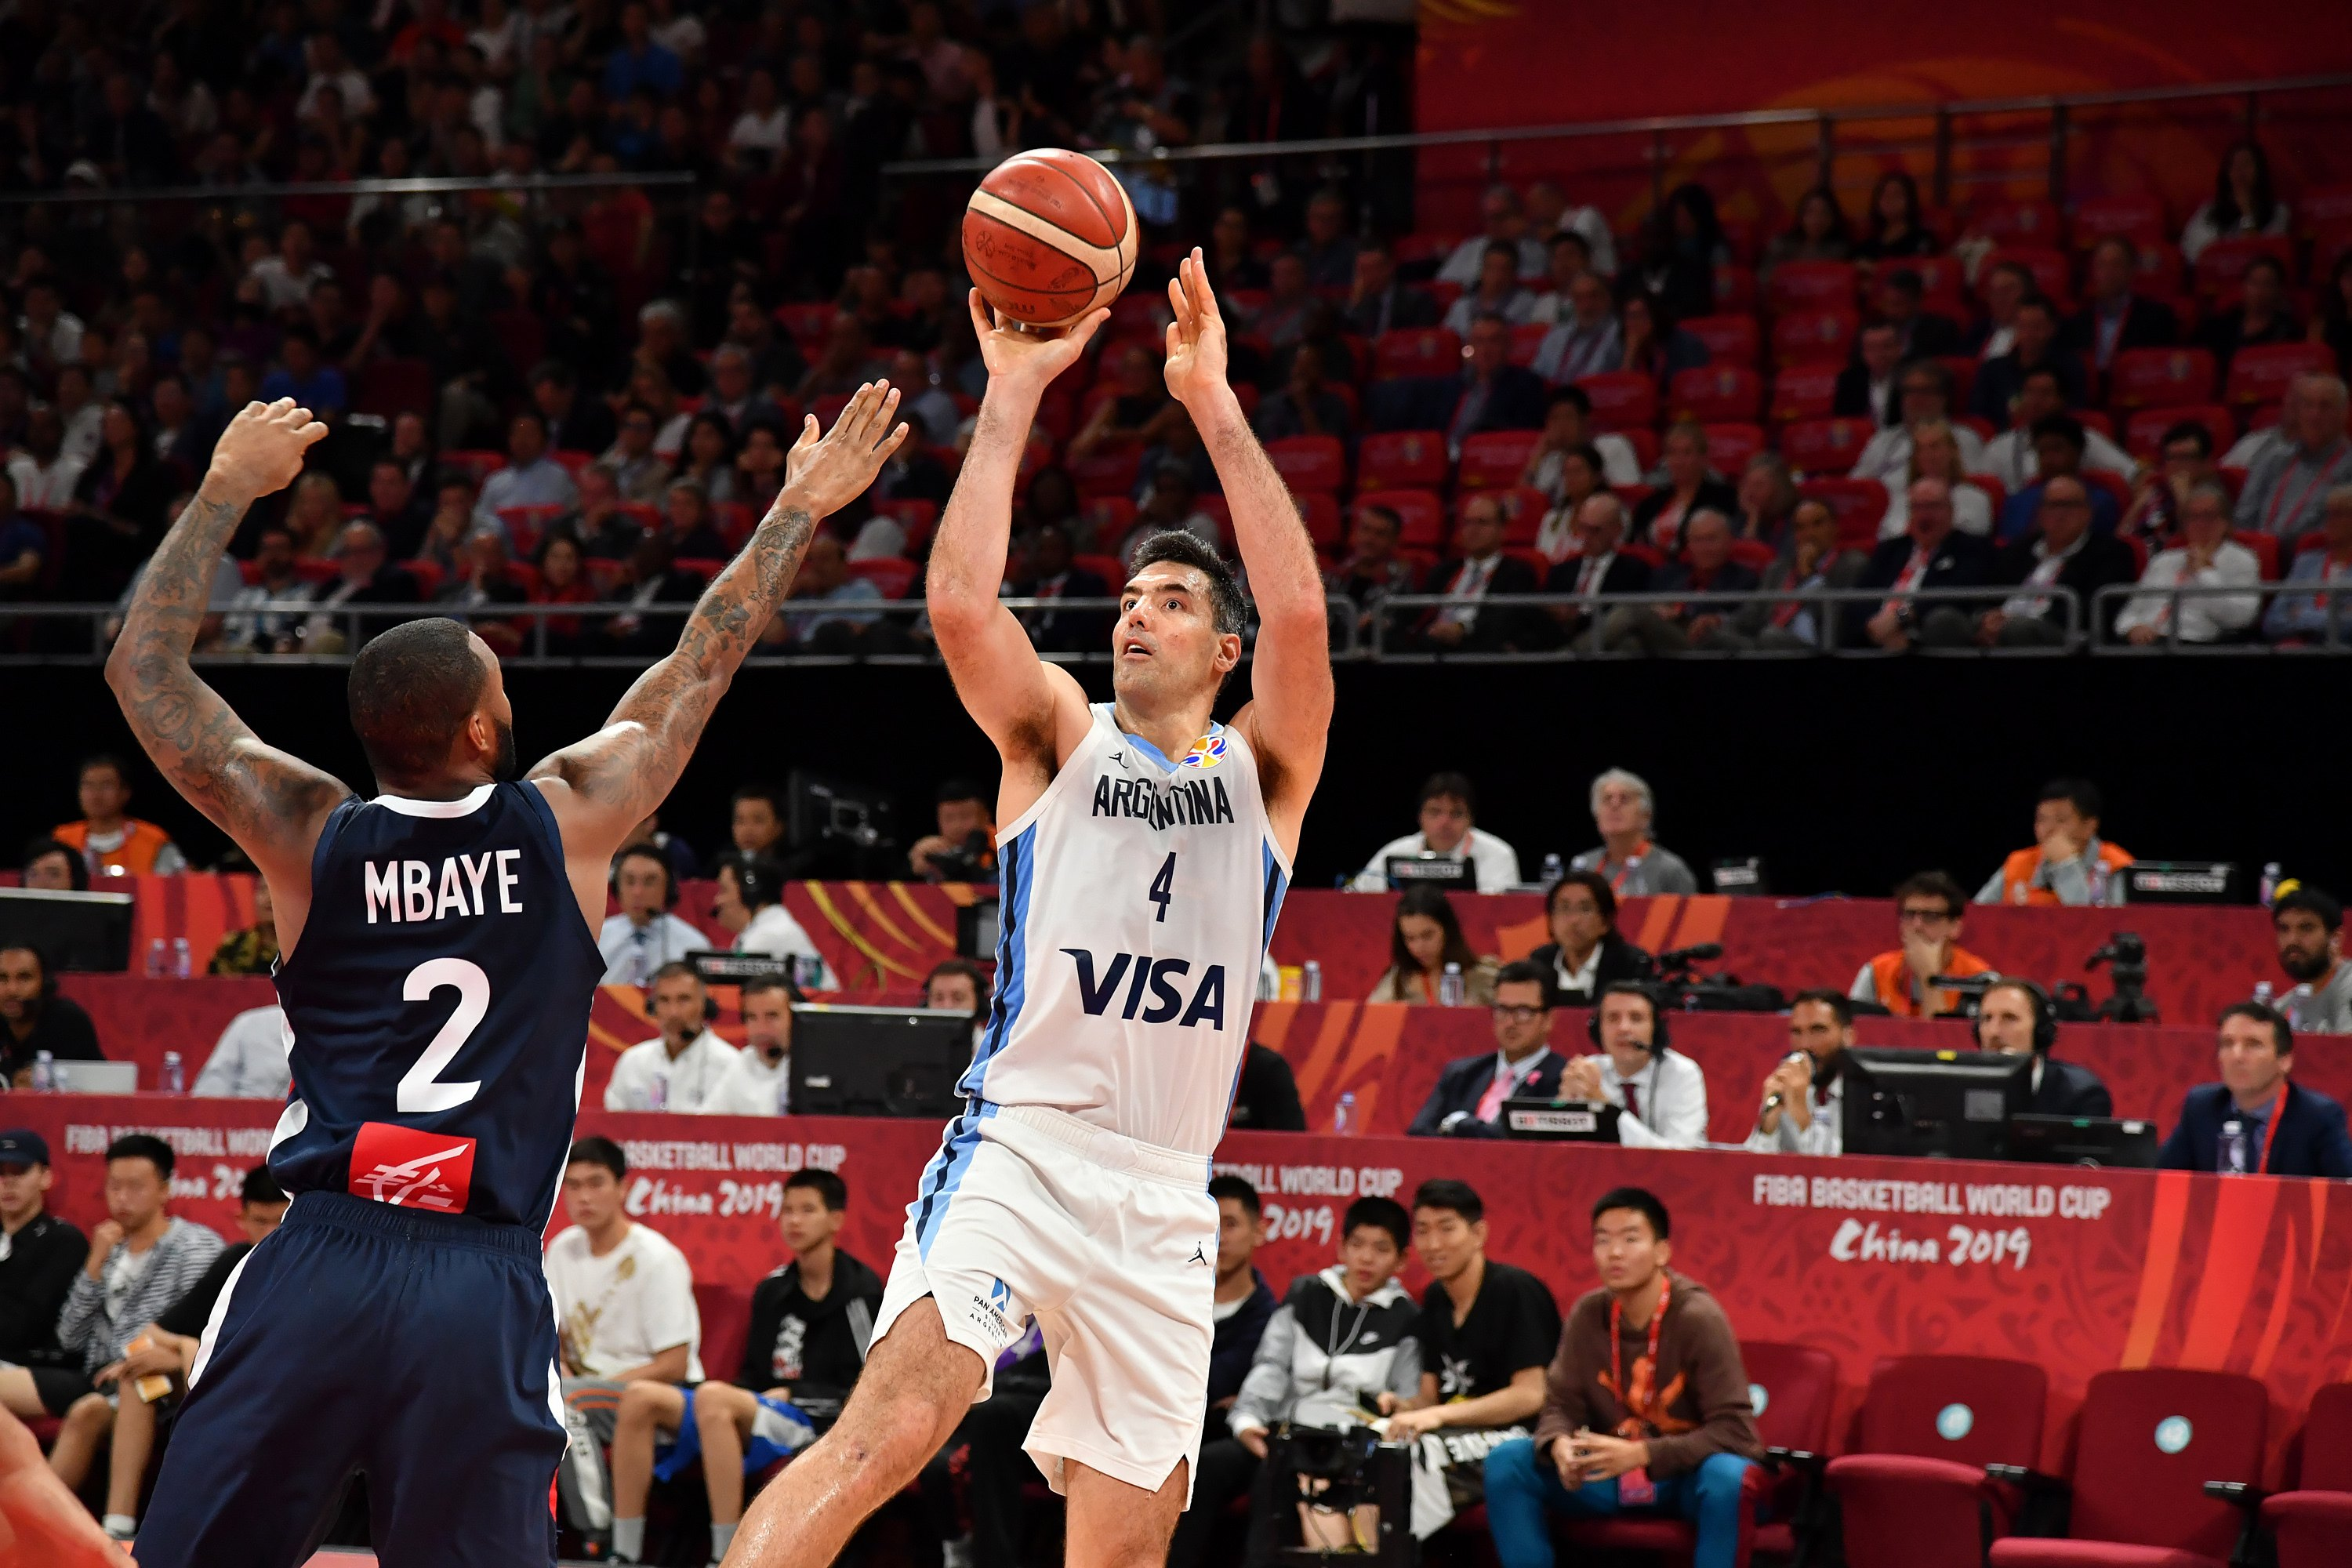 Argentina takes on Spain in the FIBA finals